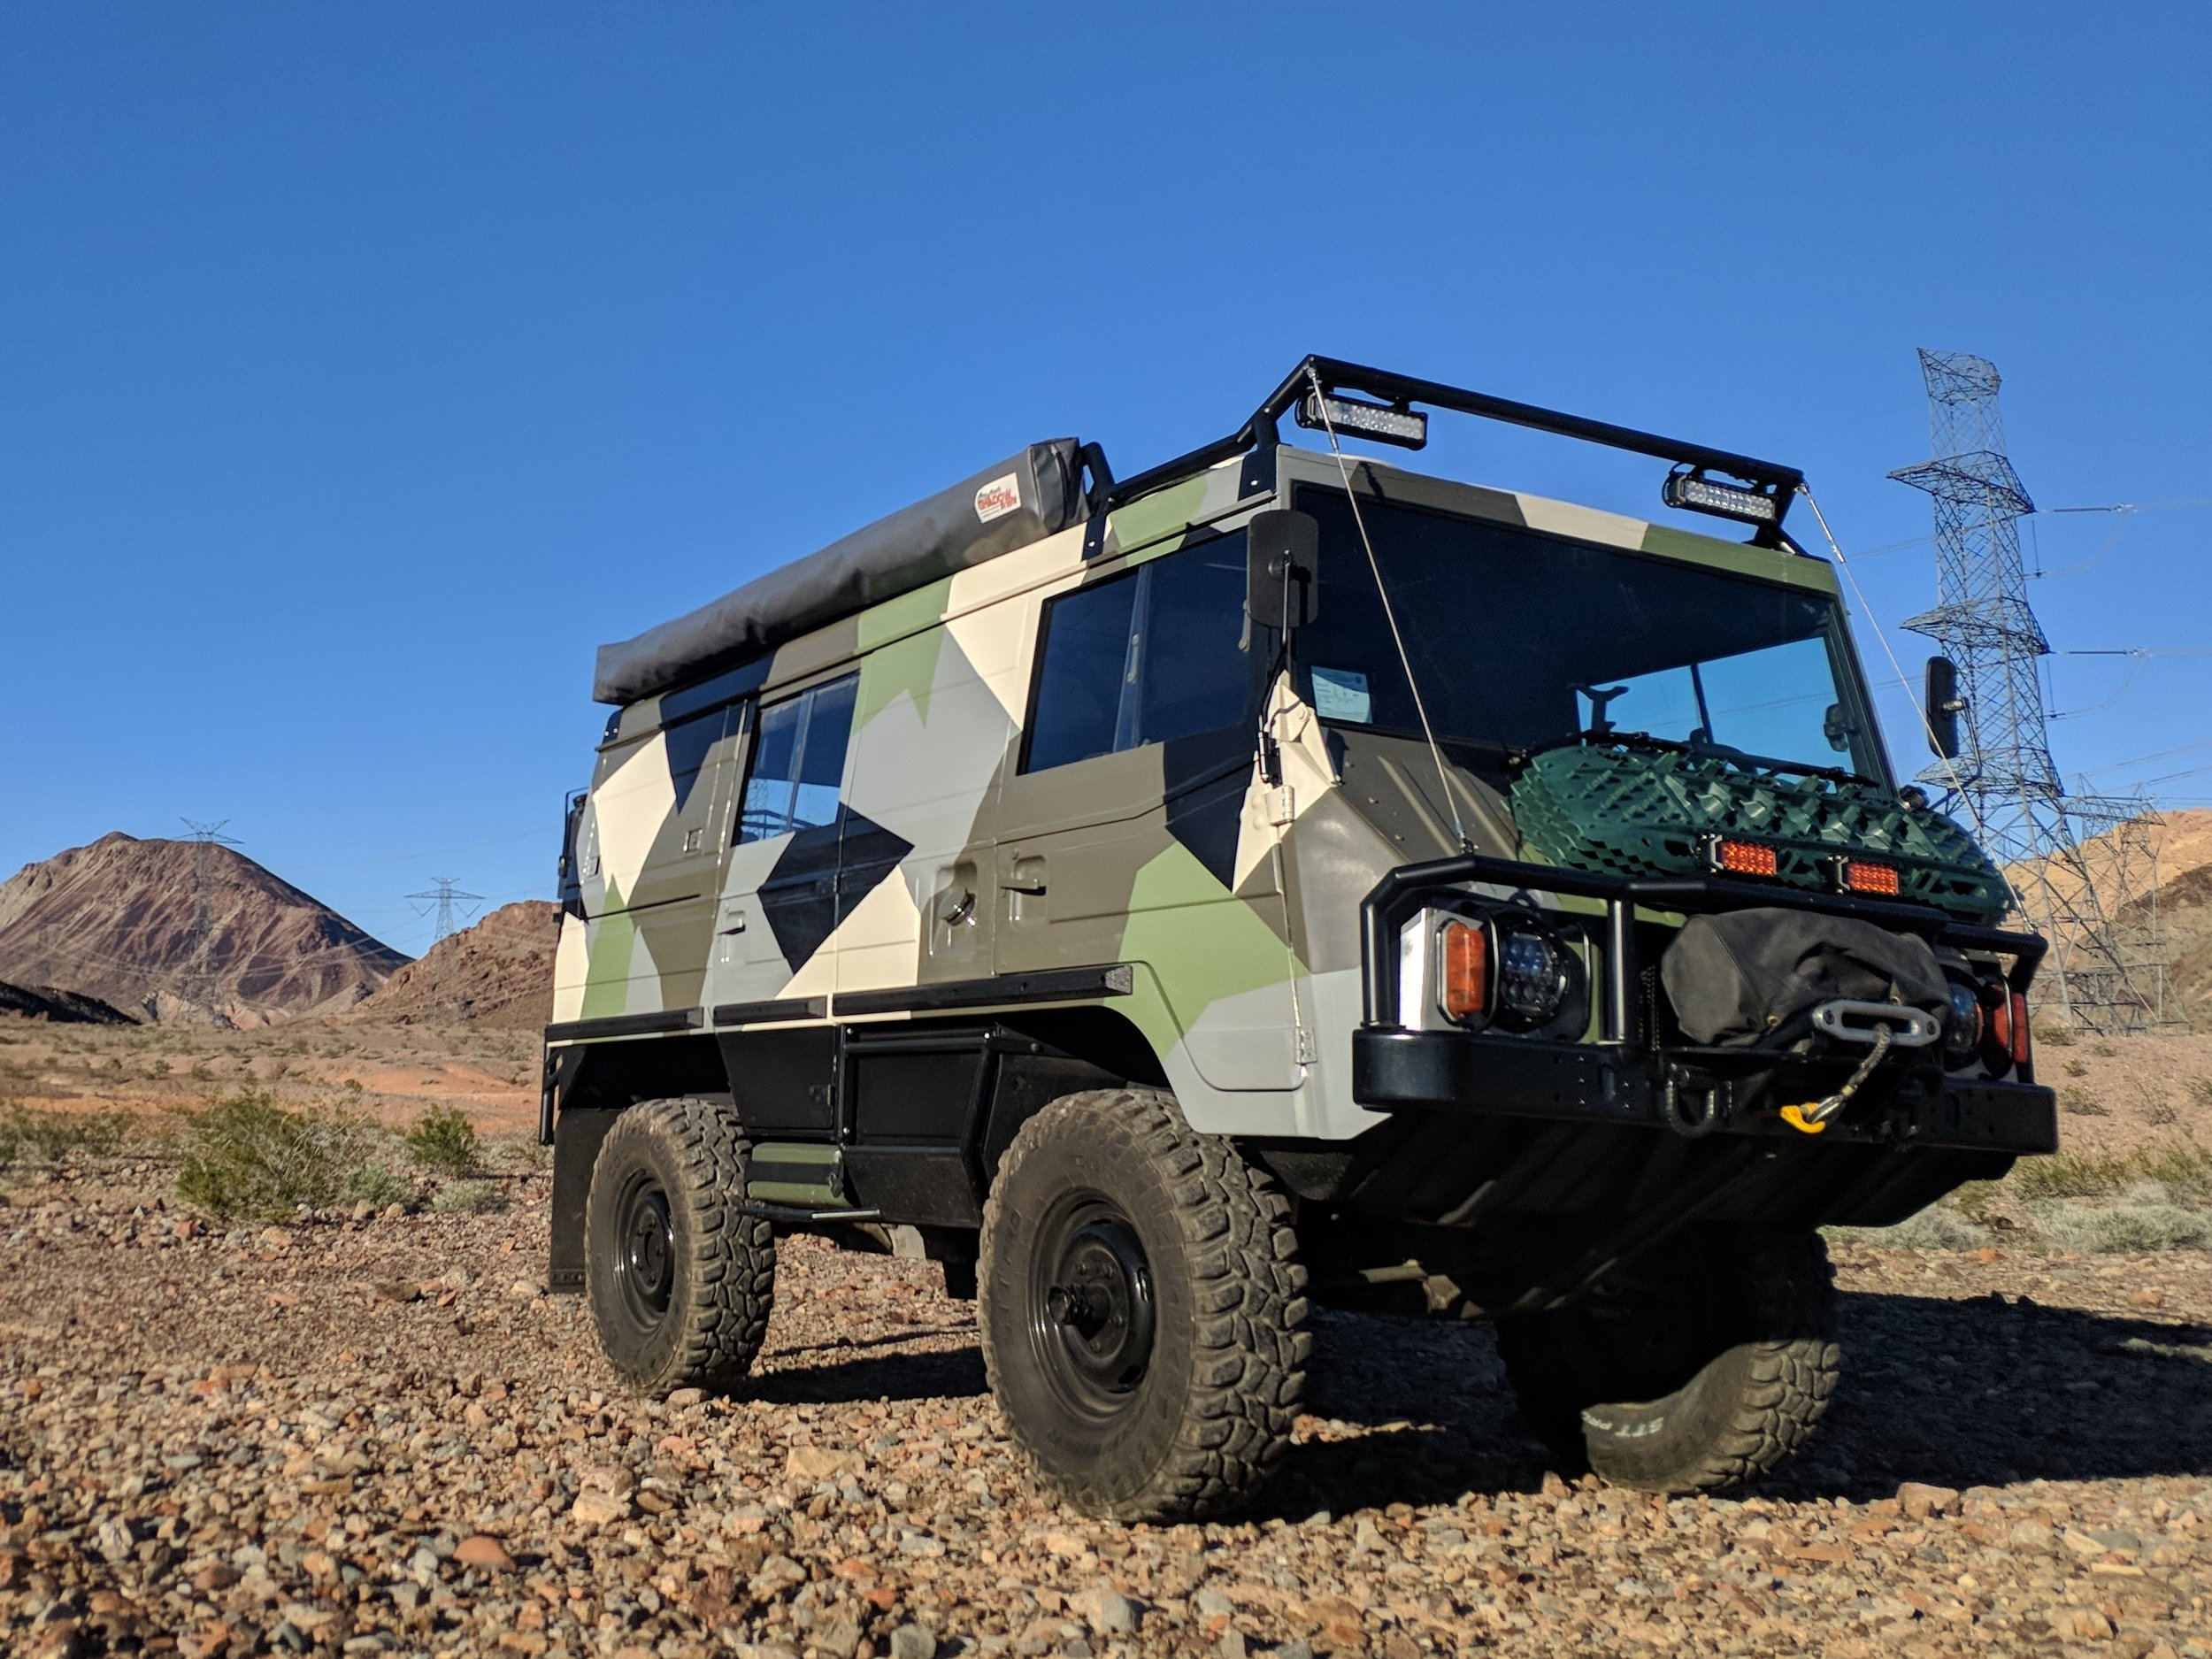 Our 1975 Steyr Pinzgauer 710K has been a project 8 years in the making. Having parted with our Land Cruiser FJ40 we wanted a vehicle at least as capable but with a cargo capacity adequate too convert into an overland microcamper. After many trials, errors, adjustments and modifications to the Pinz we've just about dialed in the ideal vehicle for our exploration of roads less traveled.